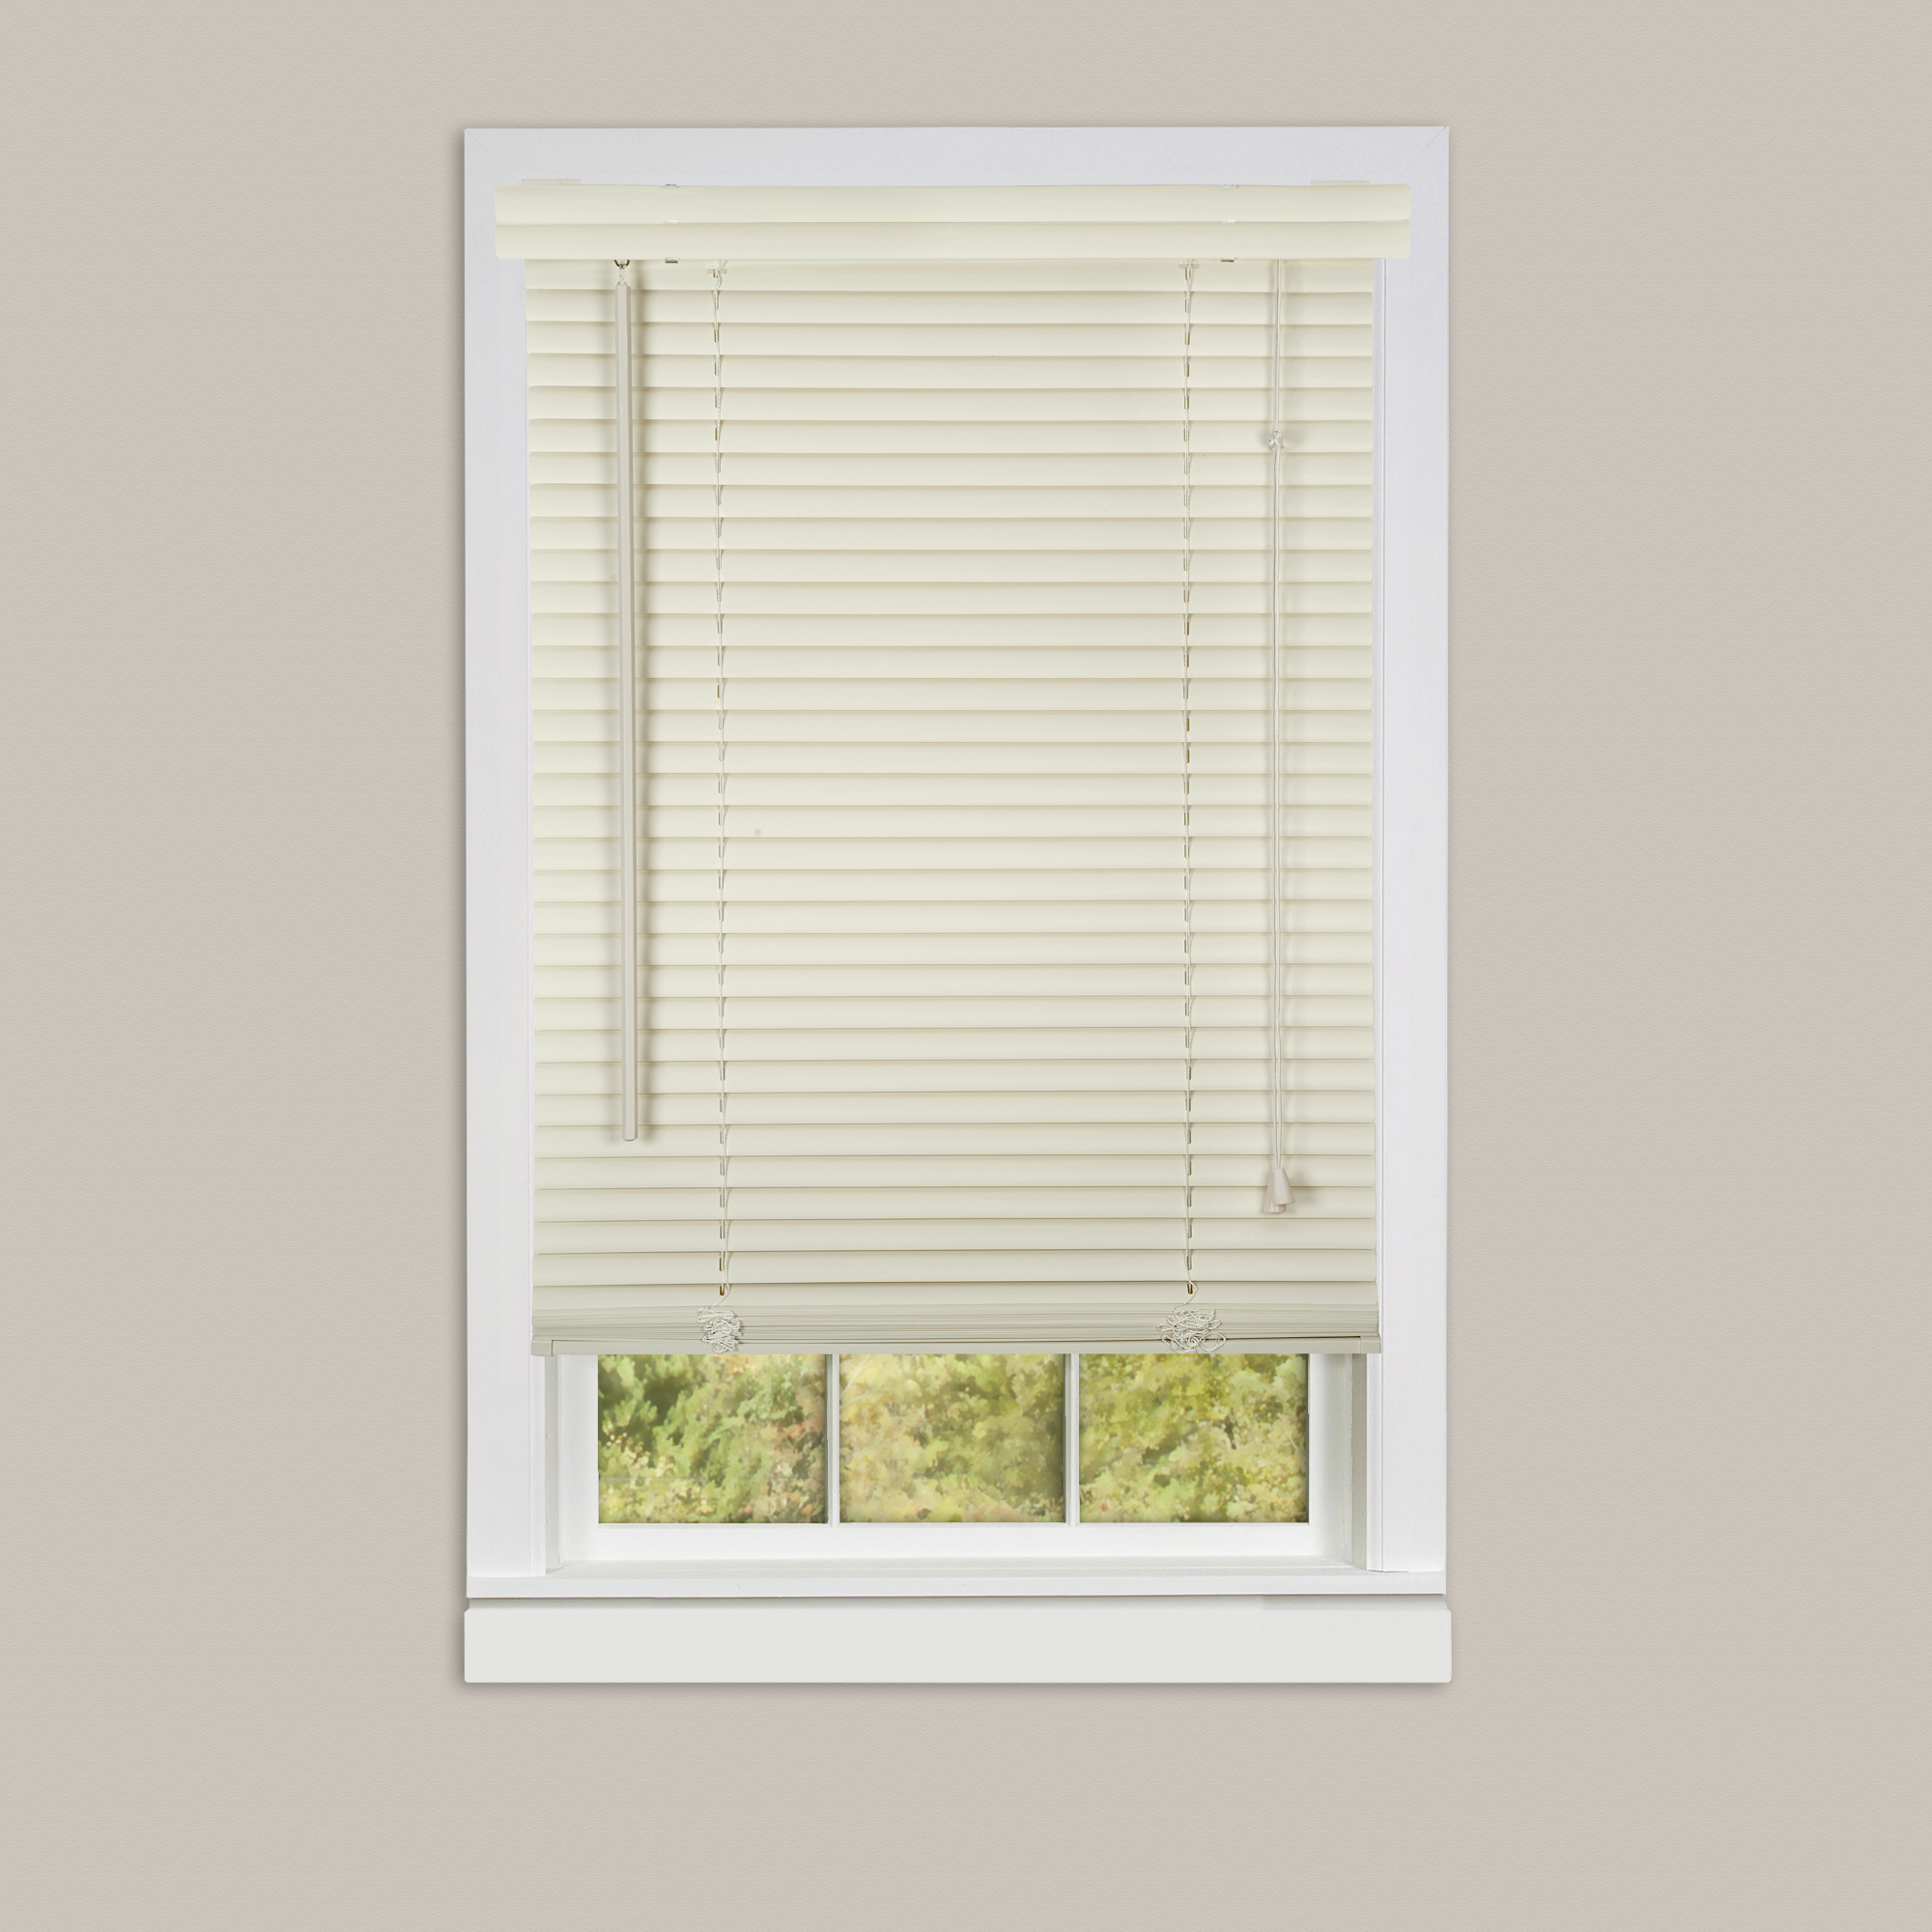 solutions qlt inch vinyl bali spin p blinds filtering window prod light wid hei white one